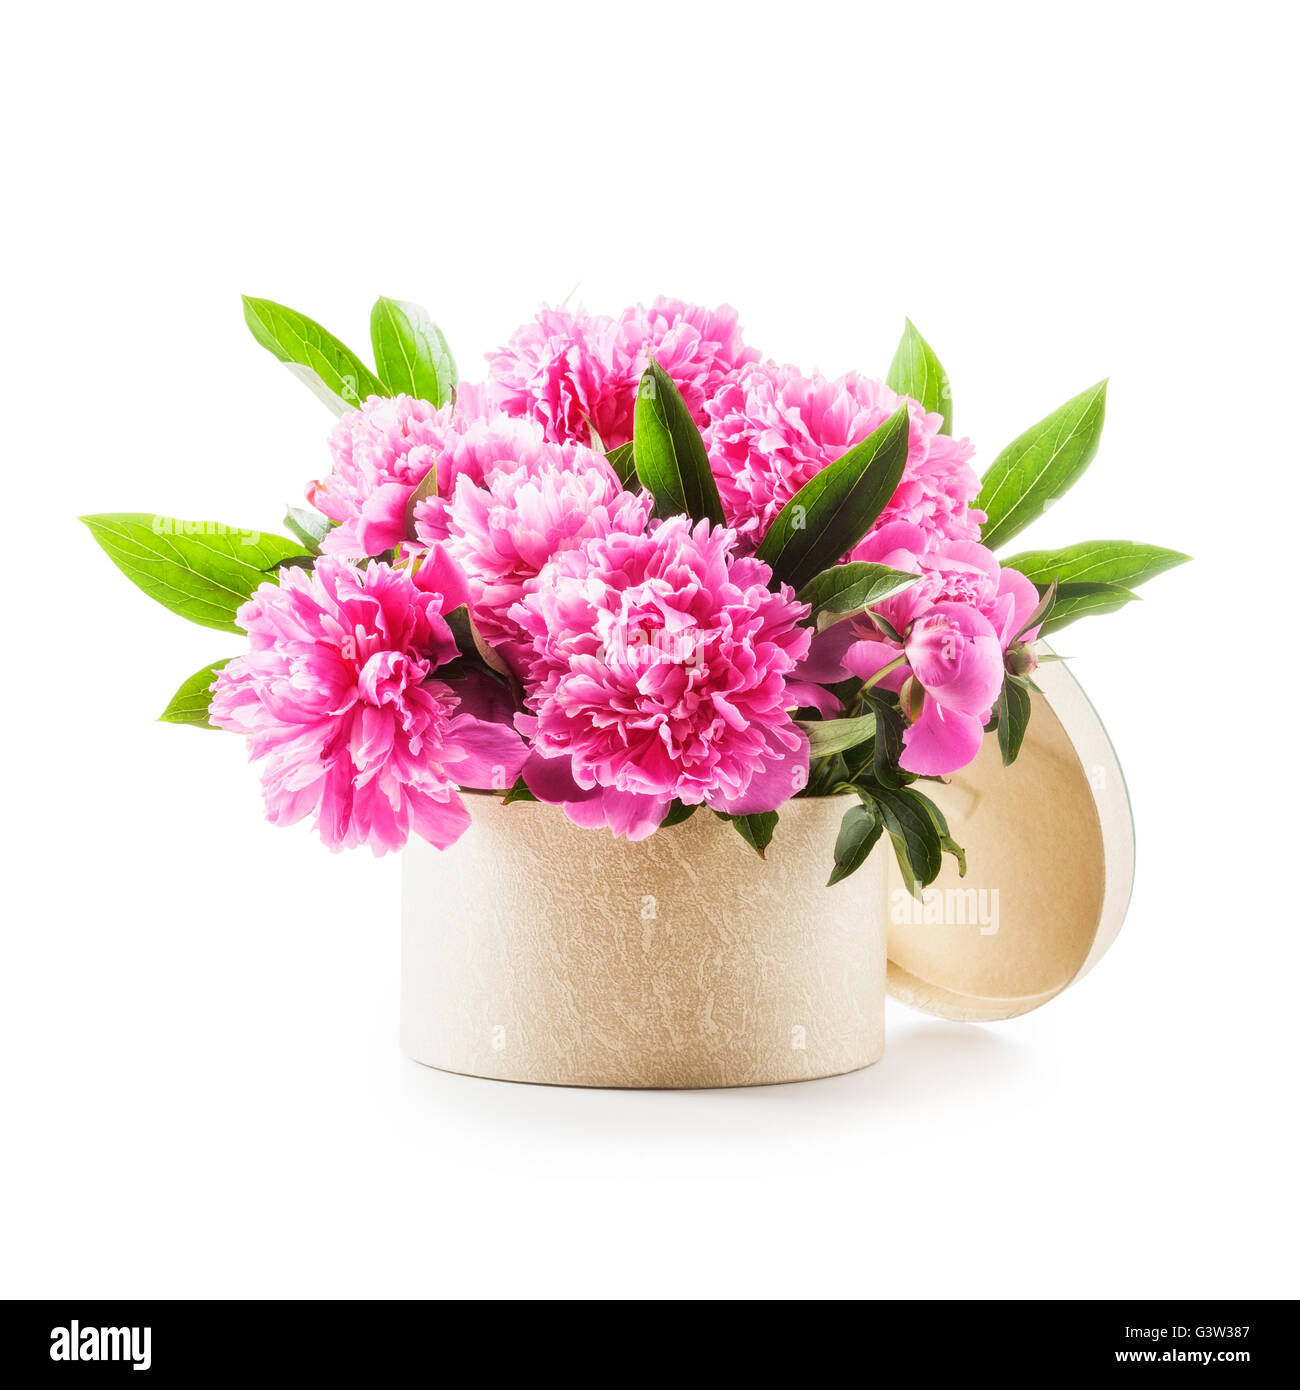 Peony flowers romantic bouquet of pink peonies in gift box peony flowers romantic bouquet of pink peonies in gift box isolated on white background clipping path included holiday present dhlflorist Images